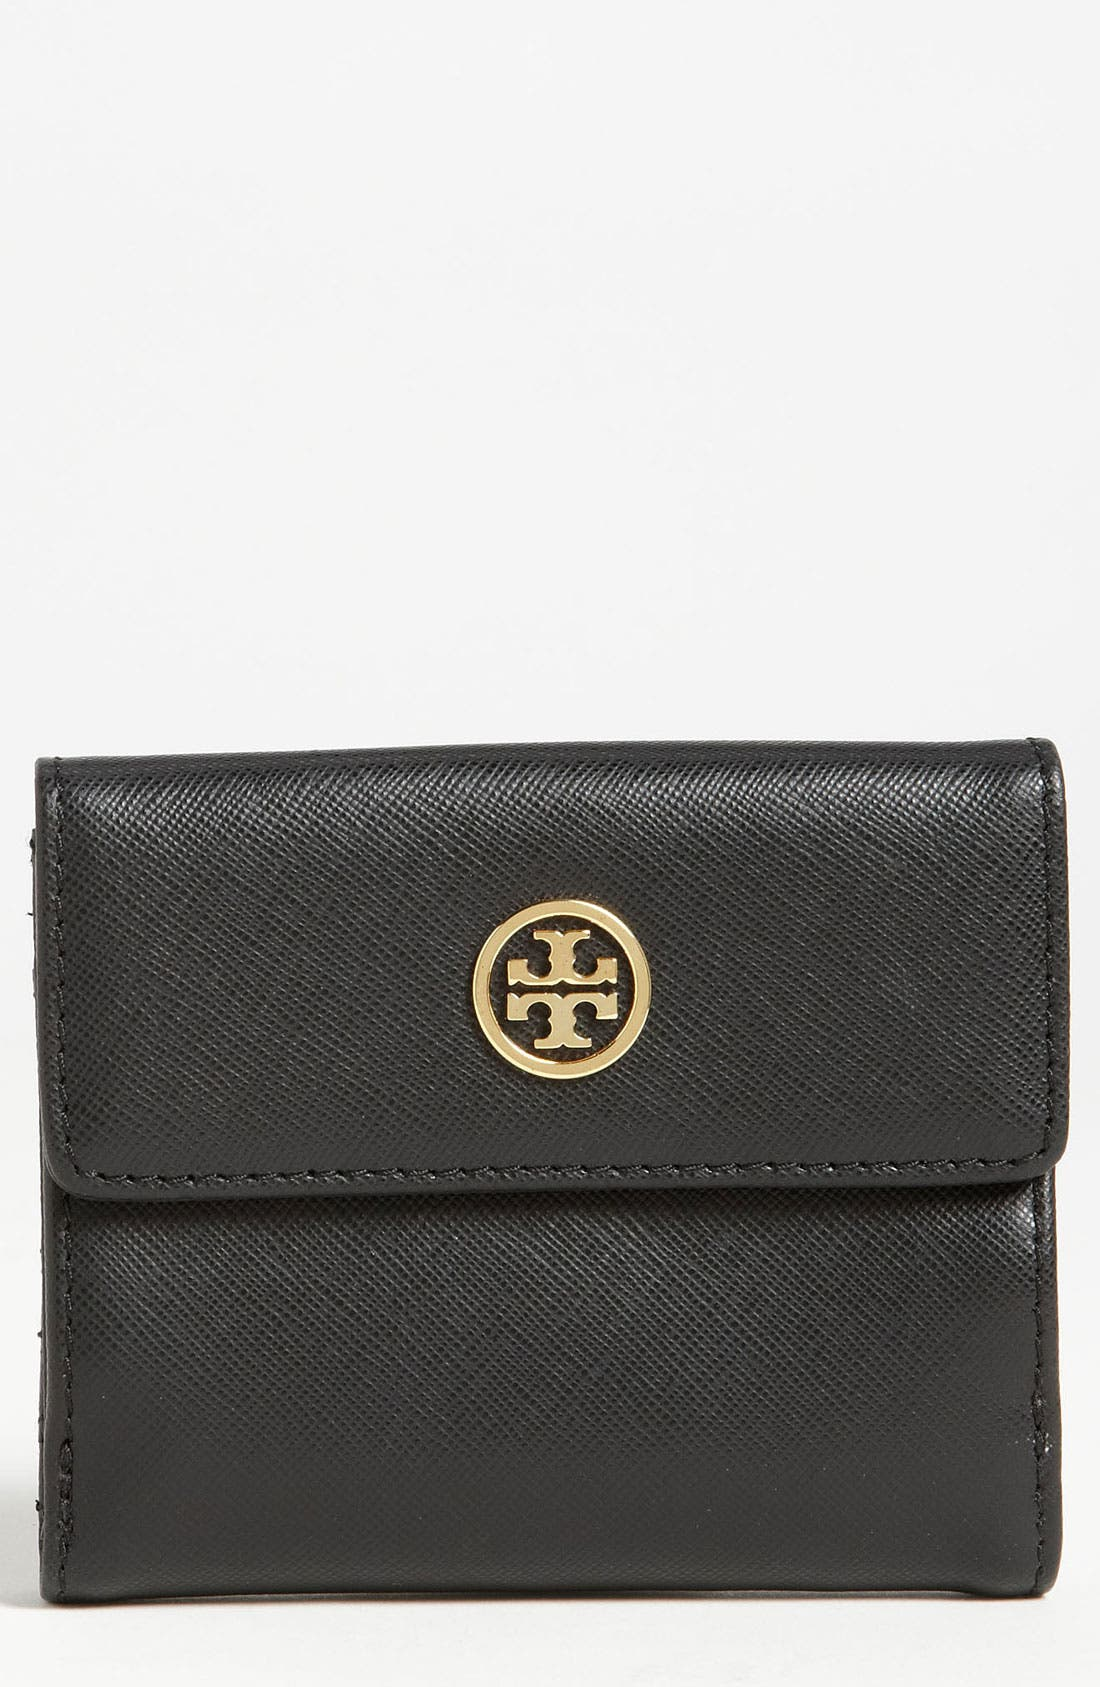 Alternate Image 1 Selected - Tory Burch 'Robinson' Double Flap French Wallet